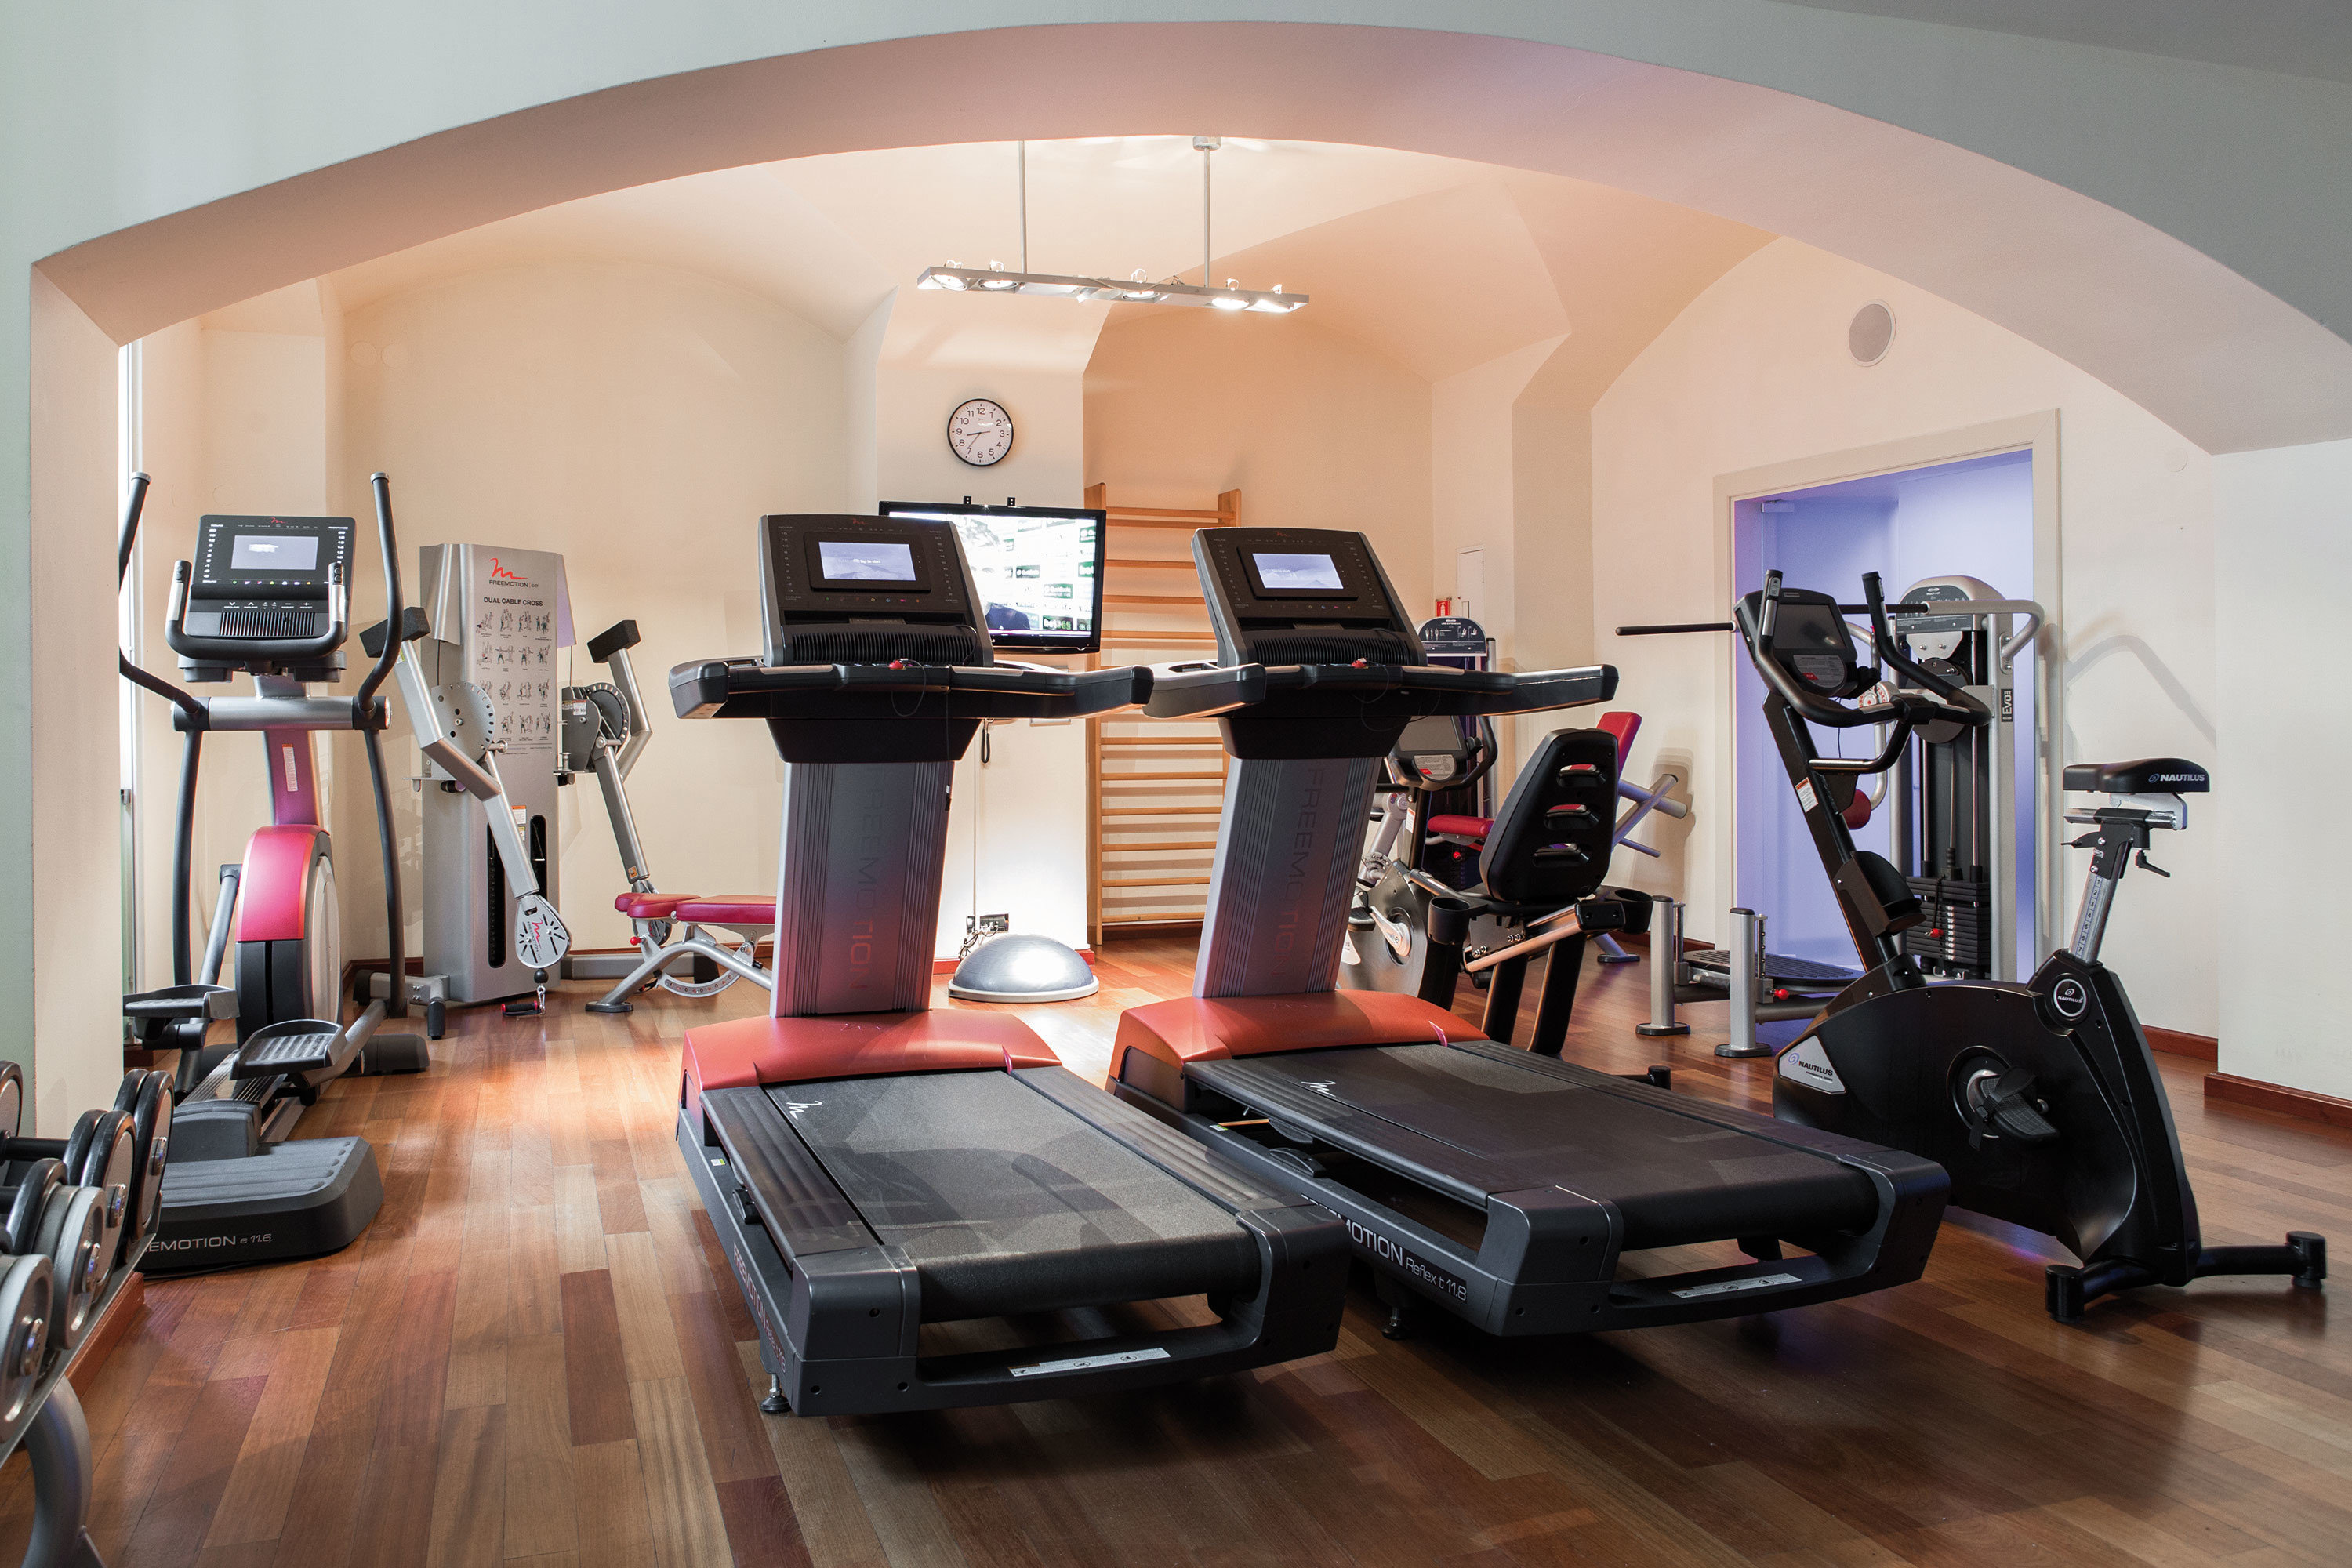 structure property sport venue gym hard cluttered